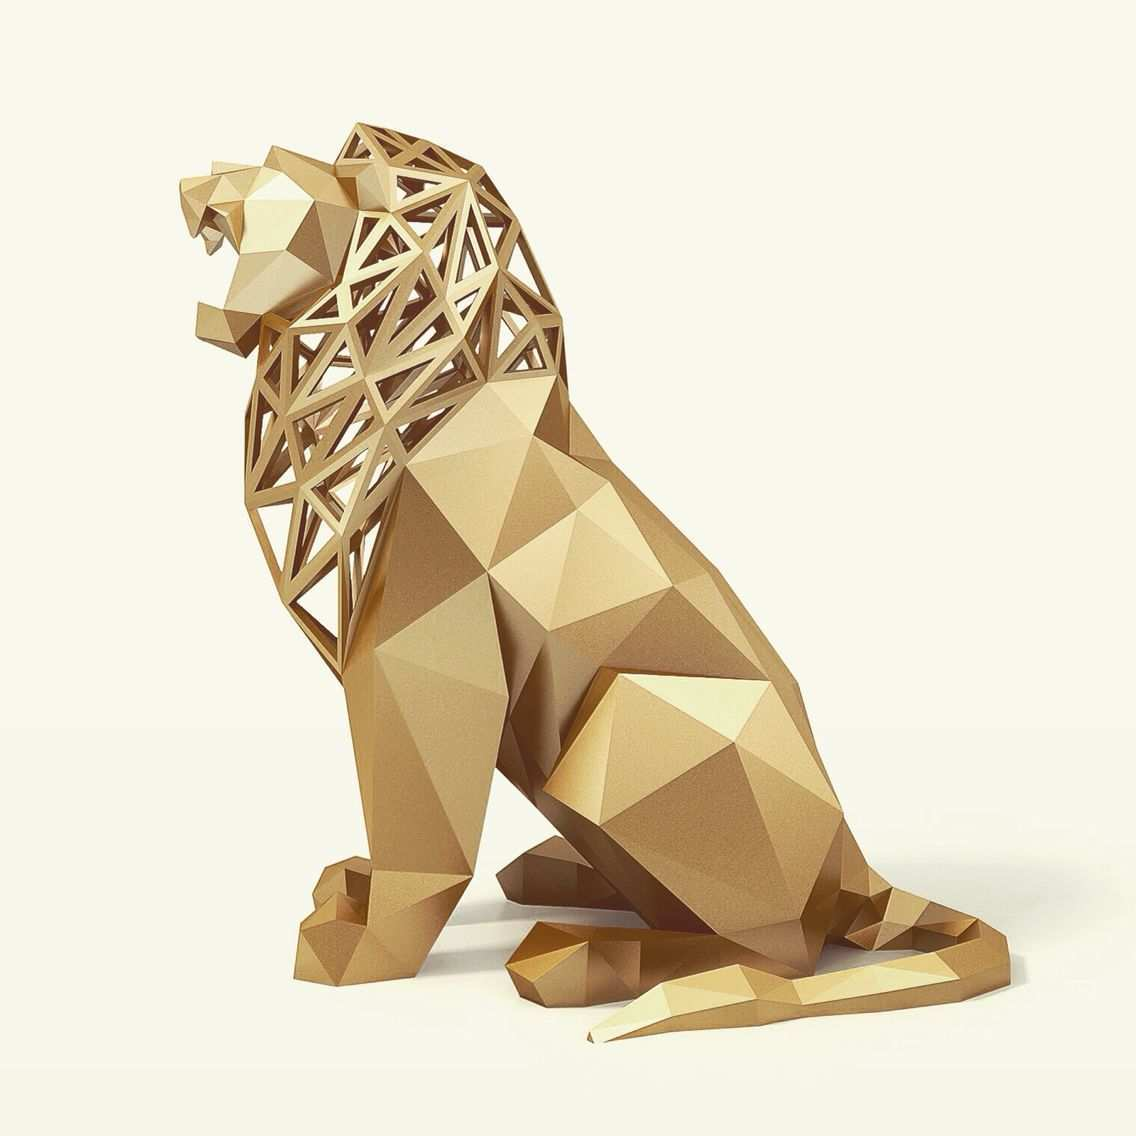 Roaring Lion By Formbyte On Shapeways 3d Printing Art Paper Sculpture Geometric Animals